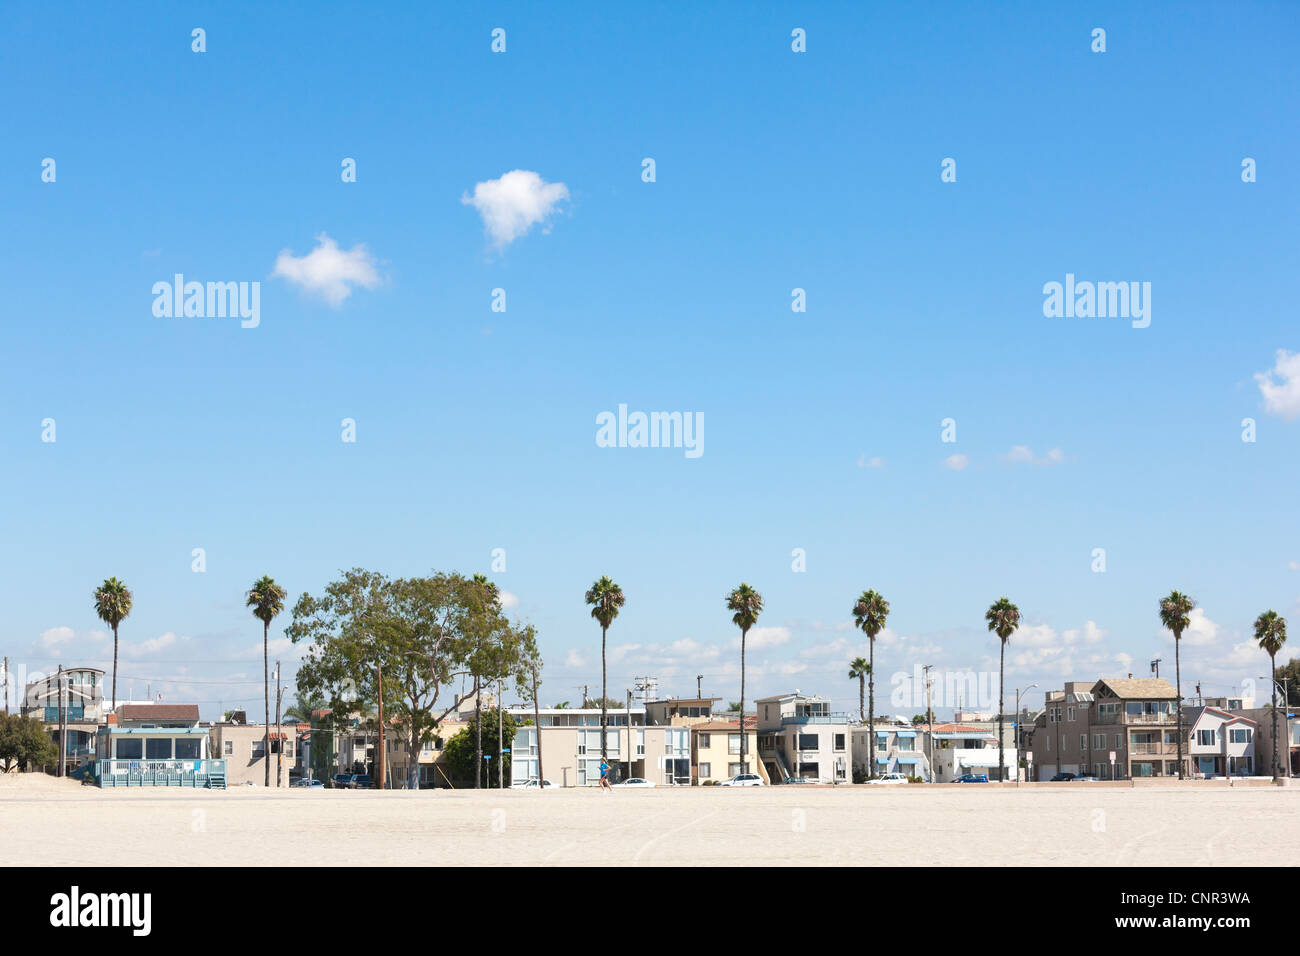 Long Beach California, East E Ocean Boulevard beach front homes. Looking out over the beachfront sand, with palm - Stock Image